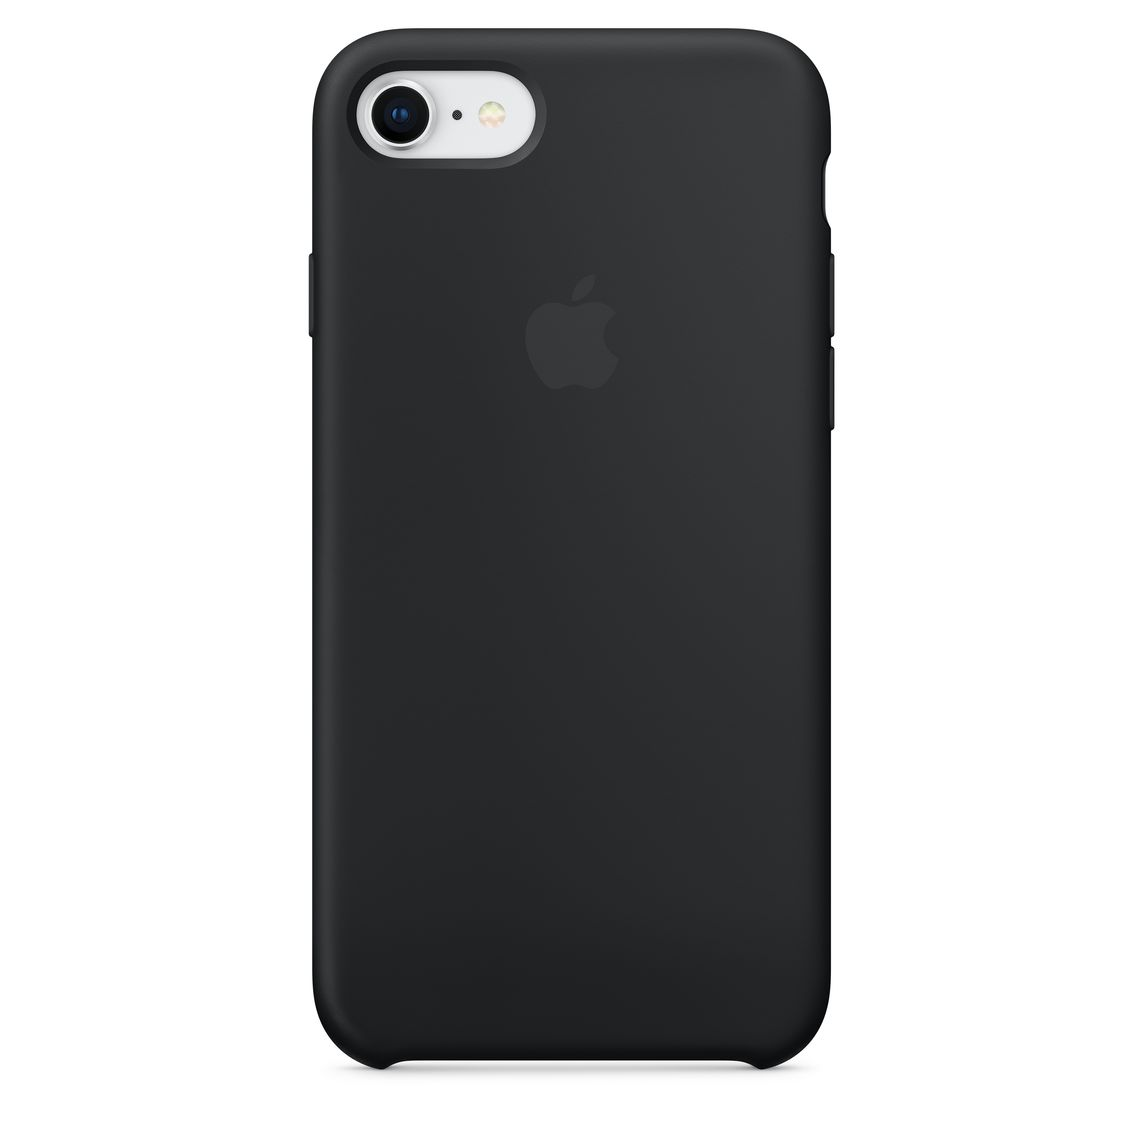 buy online ef007 19d18 iPhone 8 / 7 Silicone Case - Black